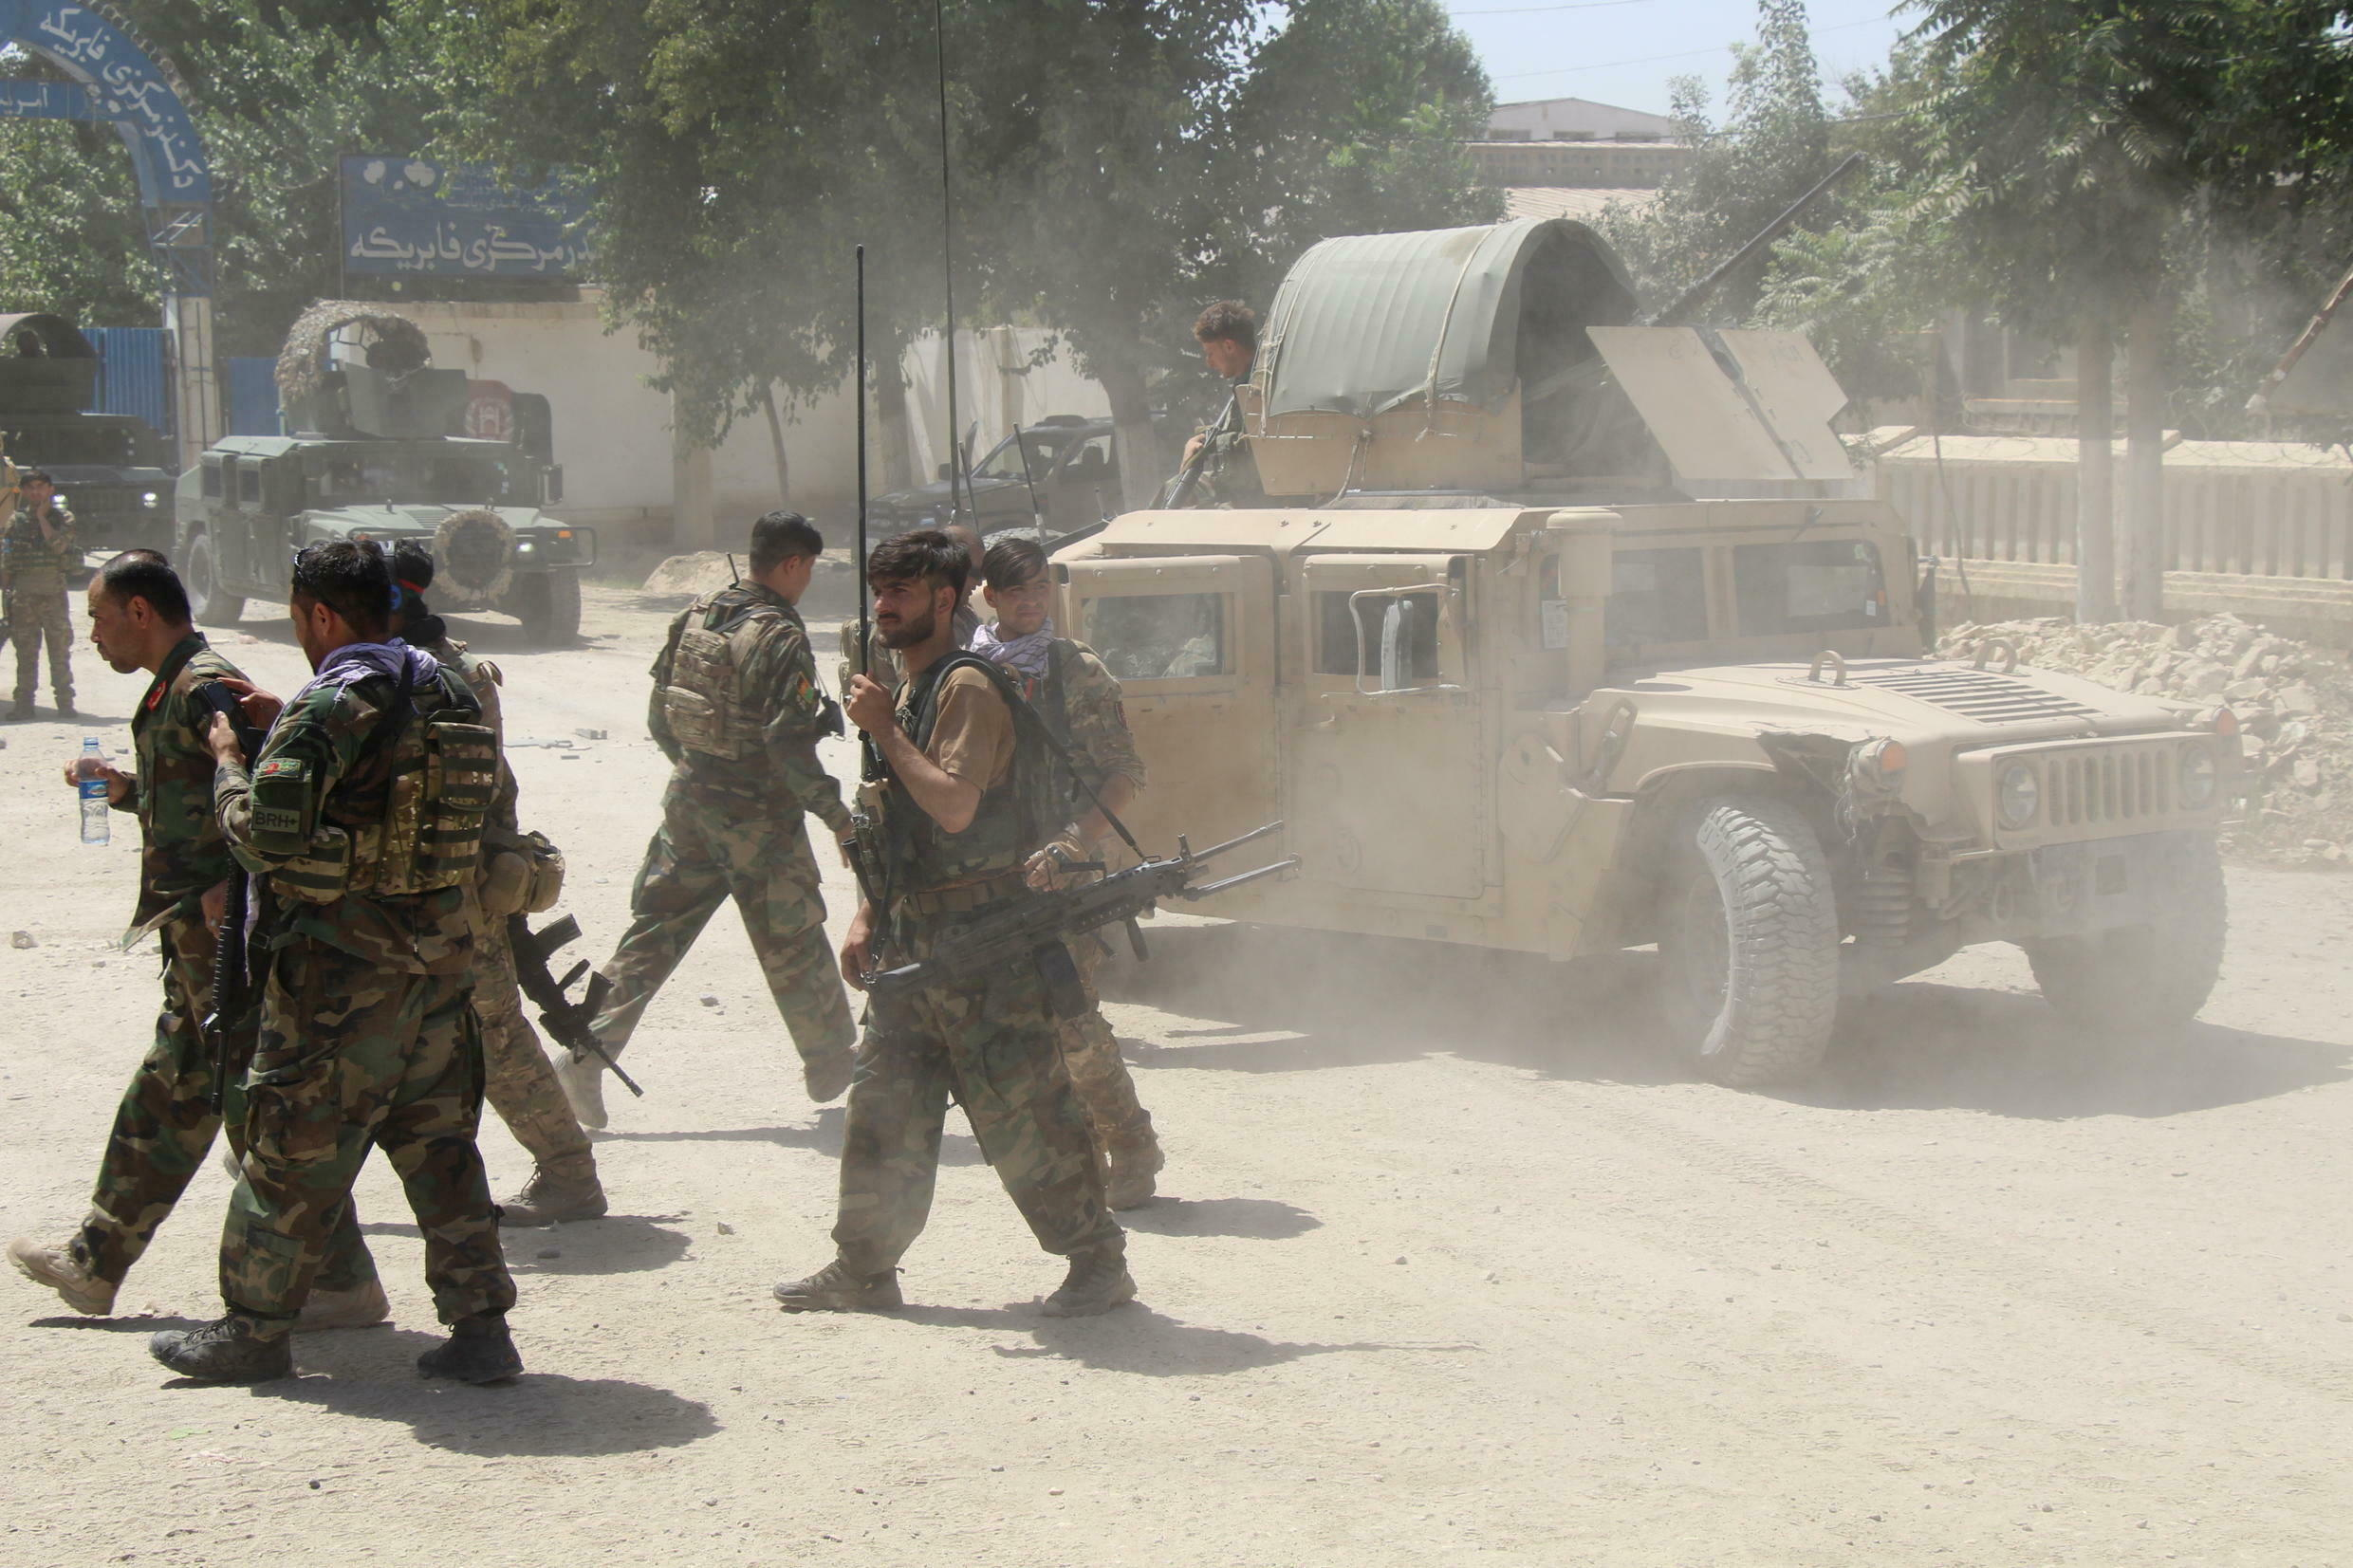 2021-06-22T113938Z_903984833_RC2N5O92L7F3_RTRMADP_3_AFGHANISTAN-CONFLICT